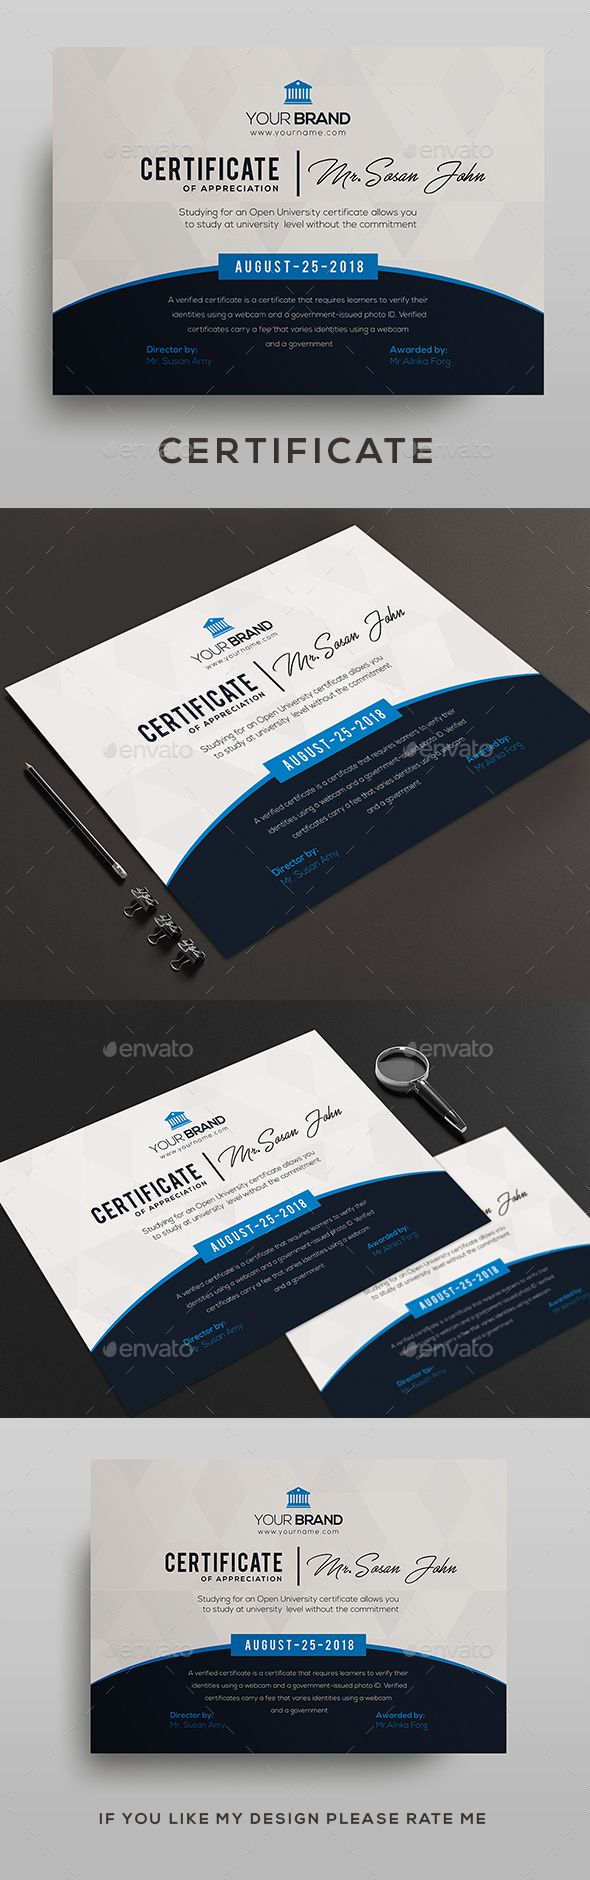 Certificate Certificates Stationery With Images Certificate Design Certificate Templates Certificate